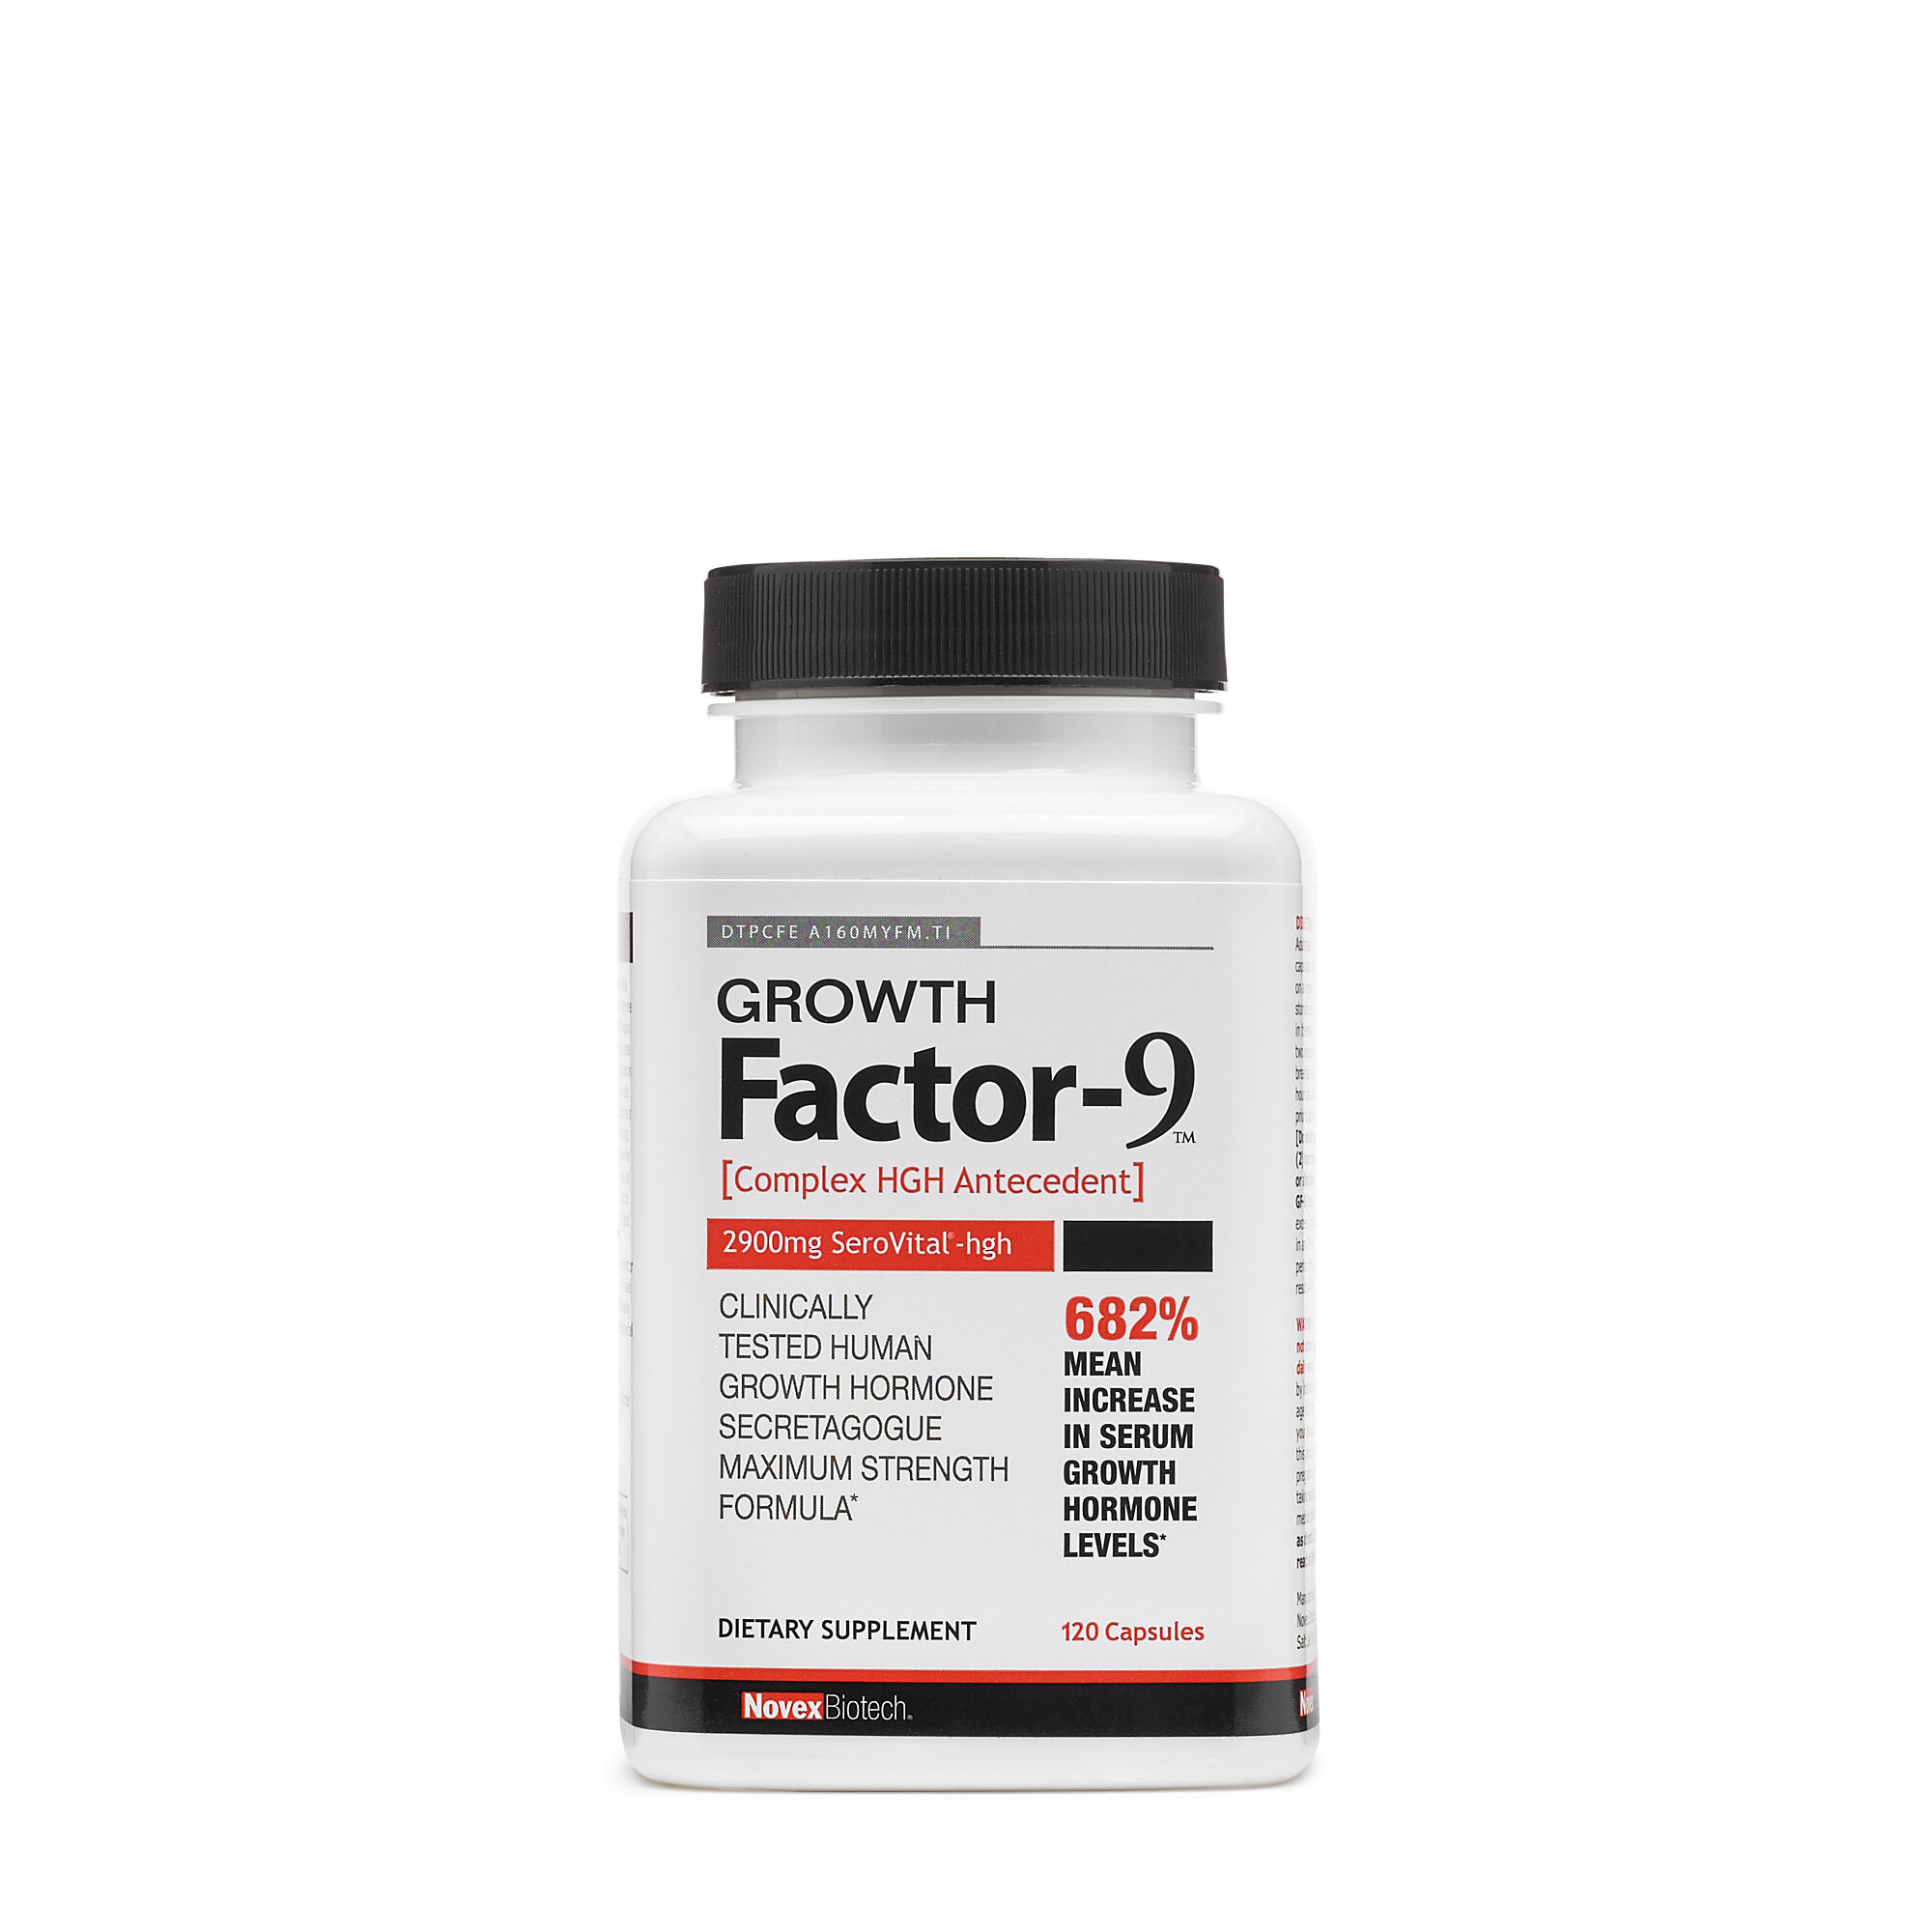 Novex Biotech™ Growth Factor-9™